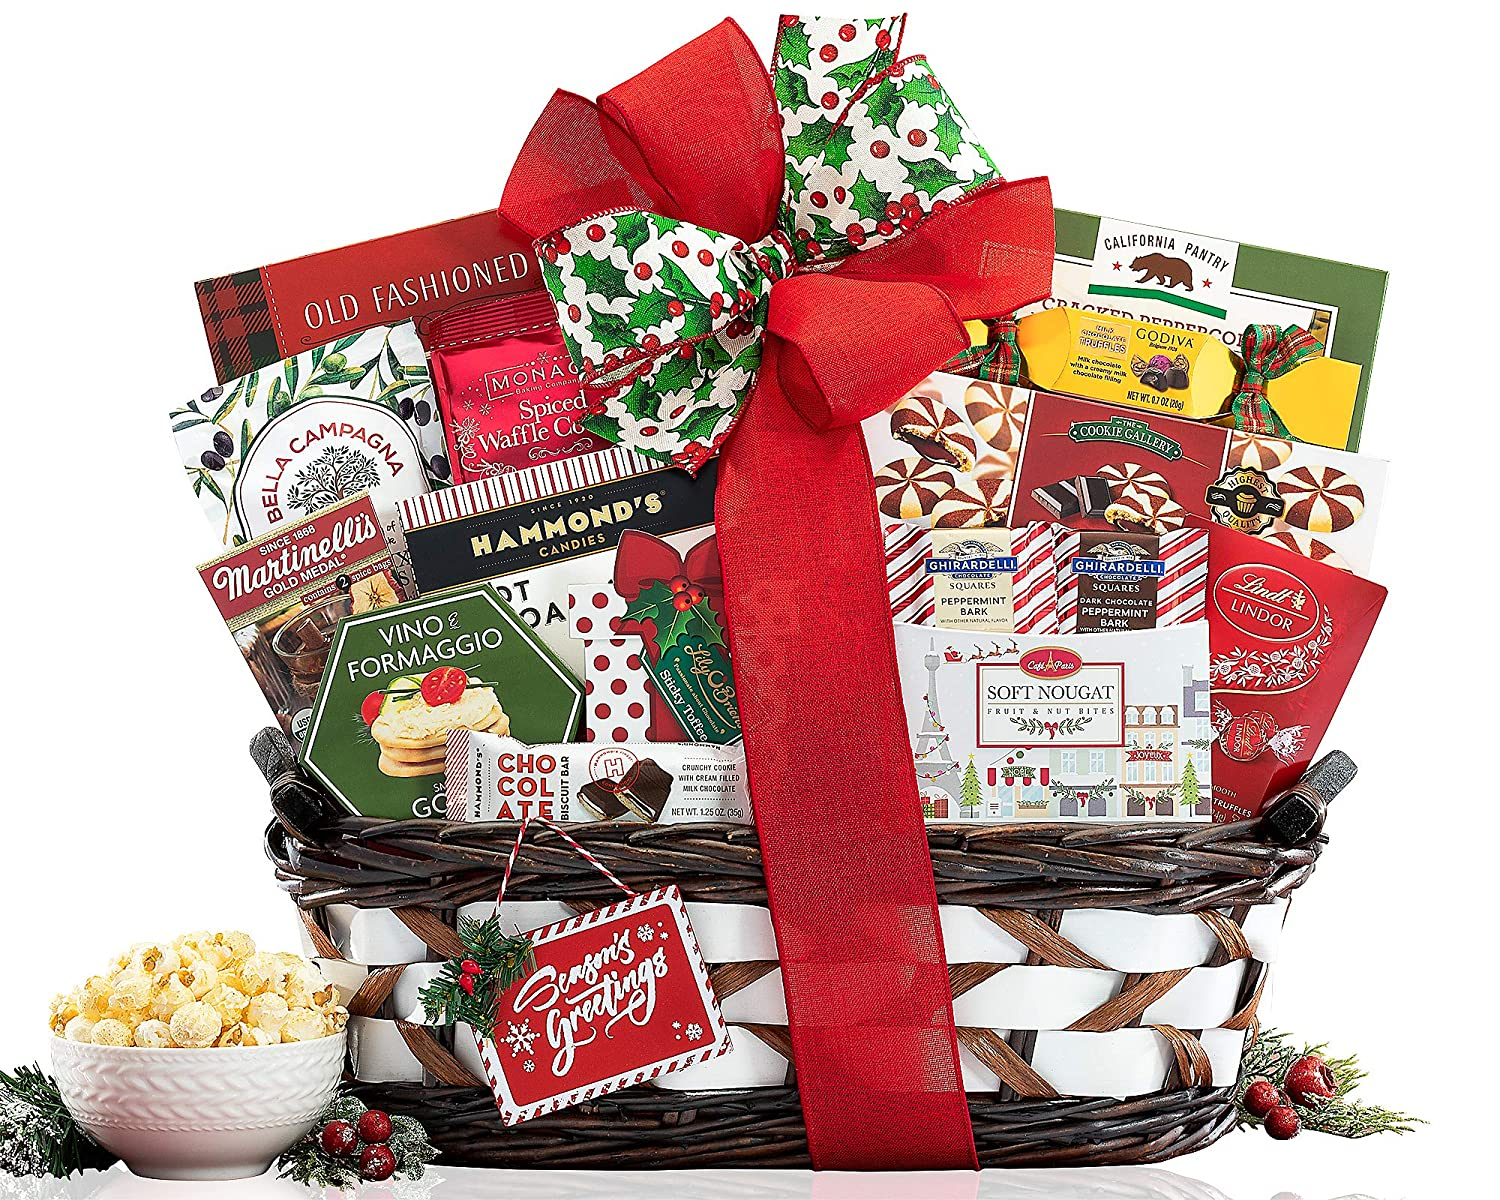 The Season's Greetings Gourmet Gift Basket by Wine Country Gift Baskets